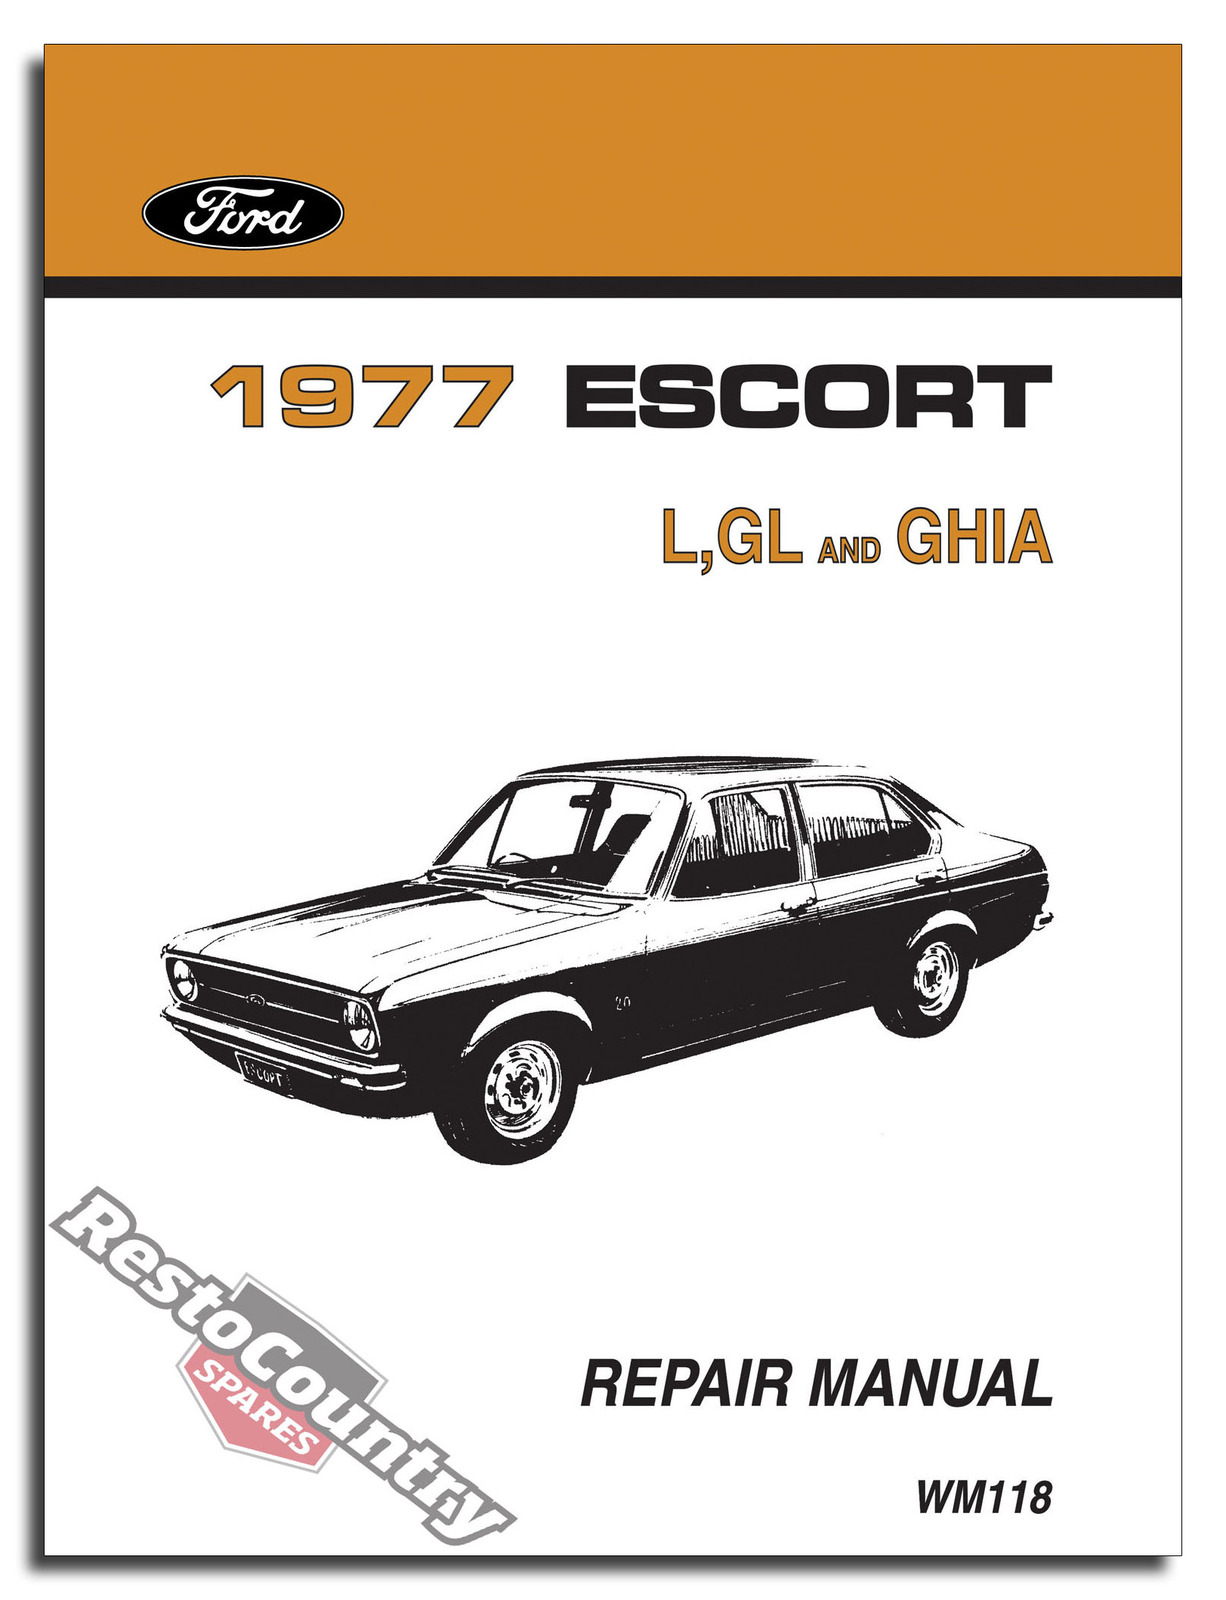 ford escort mk2 wiring diagram tool to draw sequence 1977 workshop service 43 repair manual l gl